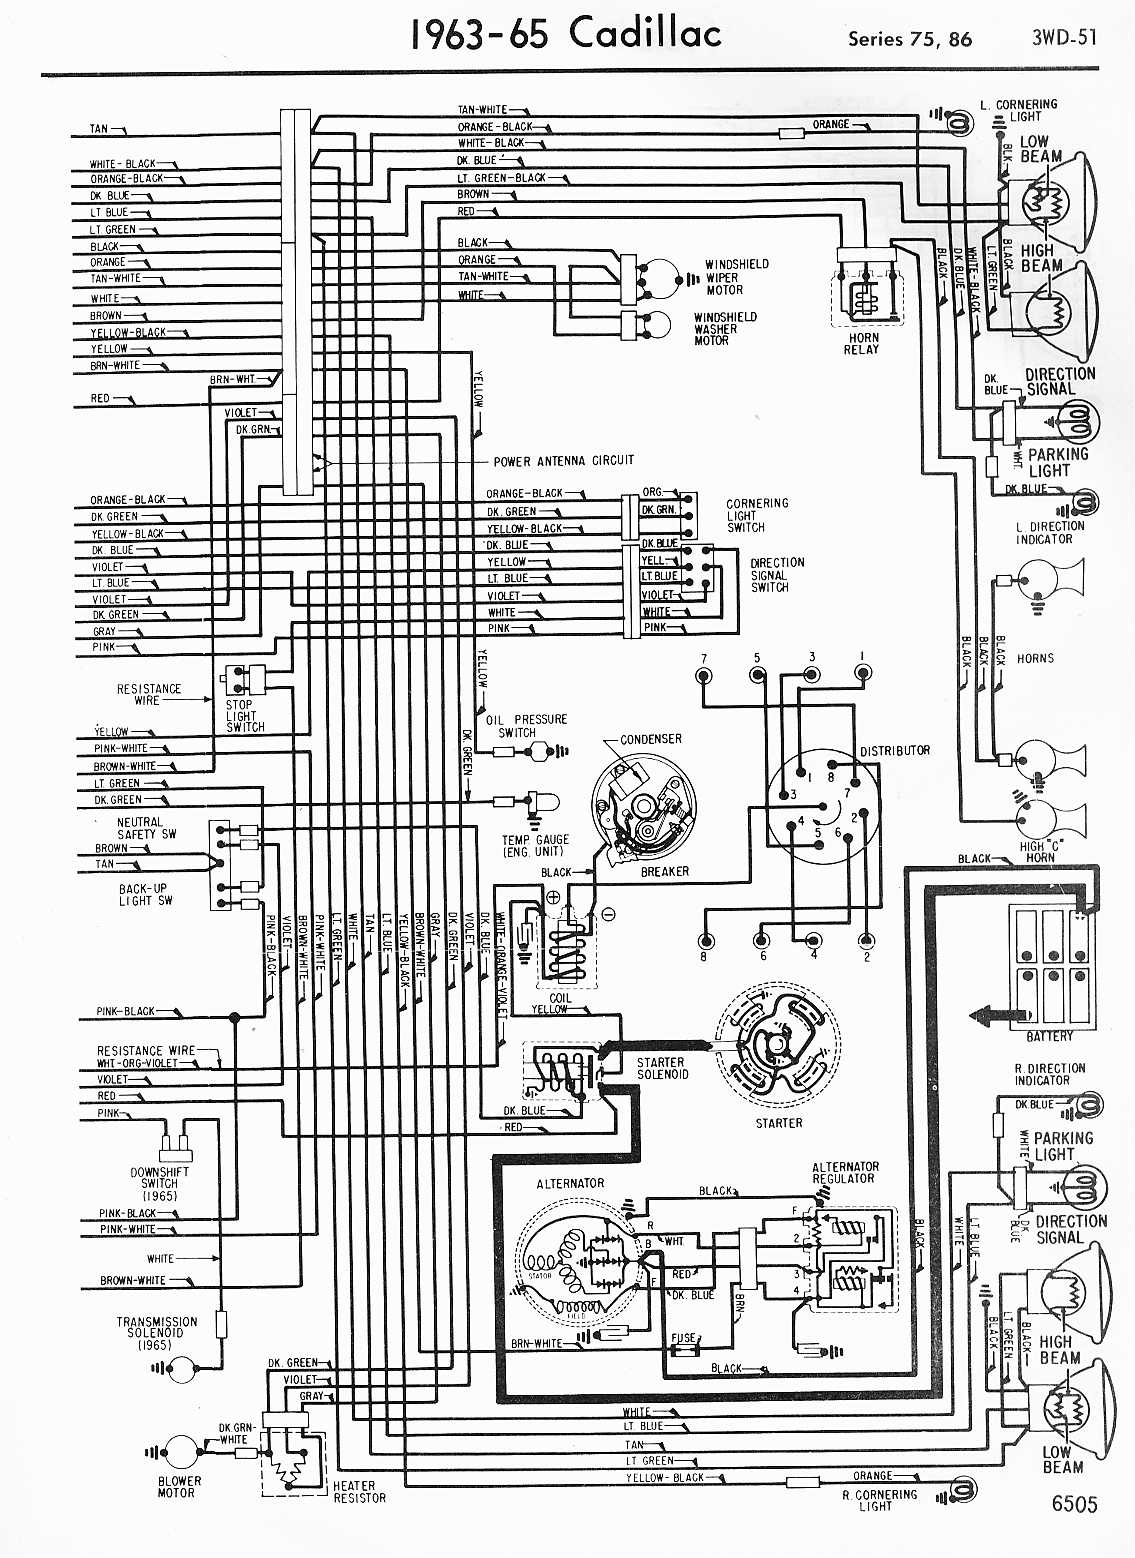 cadillac wiring diagrams 1957 1965 1962 Cadillac Wiring 1965 Cadillac Wiring 1965 series 75 right ·